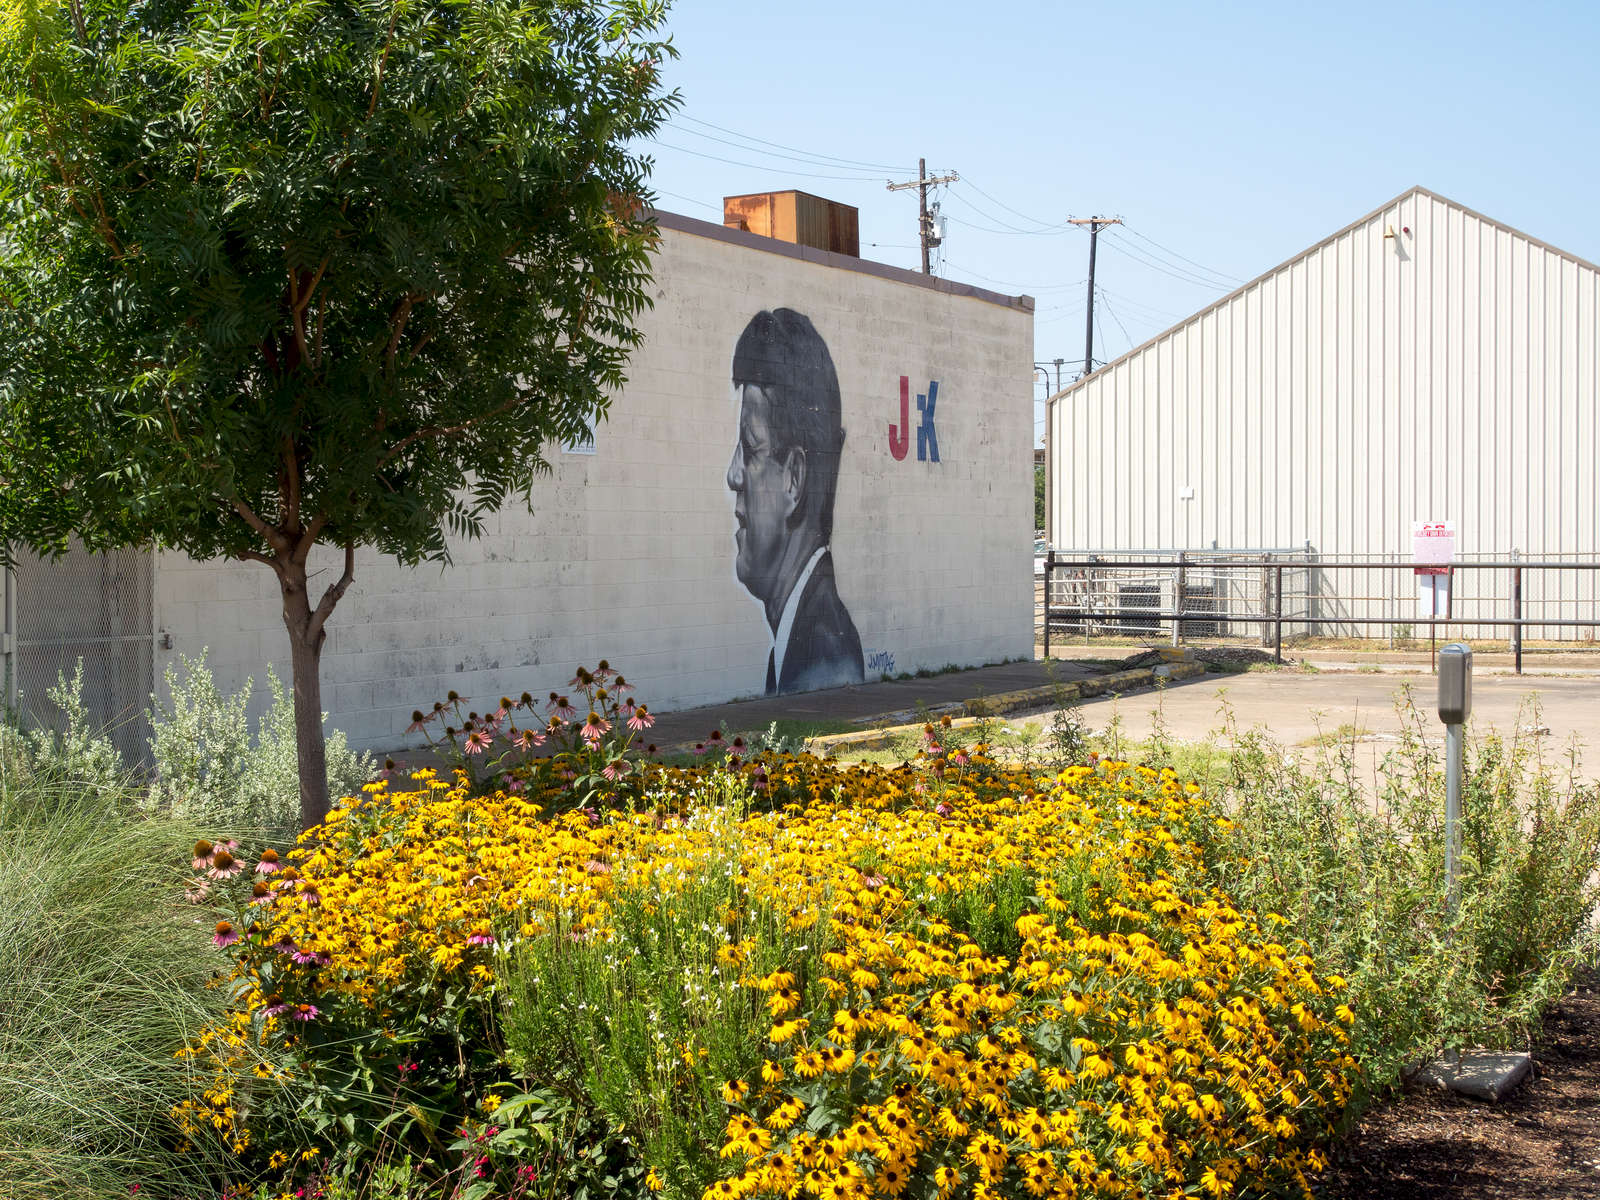 A murel of 35th President of the United States, John F. Kennedy on a wall in south Dallas, the city where he was assasinated.Dallas is a major city in Texas and is the largest urban center of the fourth most populous metropolitan area in the United States. The city ranks ninth in the U.S. and third in Texas after Houston and San Antonio. The city's prominence arose from its historical importance as a center for the oil and cotton industries, and its position along numerous railroad lines.For two weeks in the summer of 2015, photographer Peter Dench visited Dallas to document the metroplex in his epic reportage, DENCH DOES DALLAS.Photographed using an Olympus E-M5 Mark II©Peter Dench/Getty Images Reportage